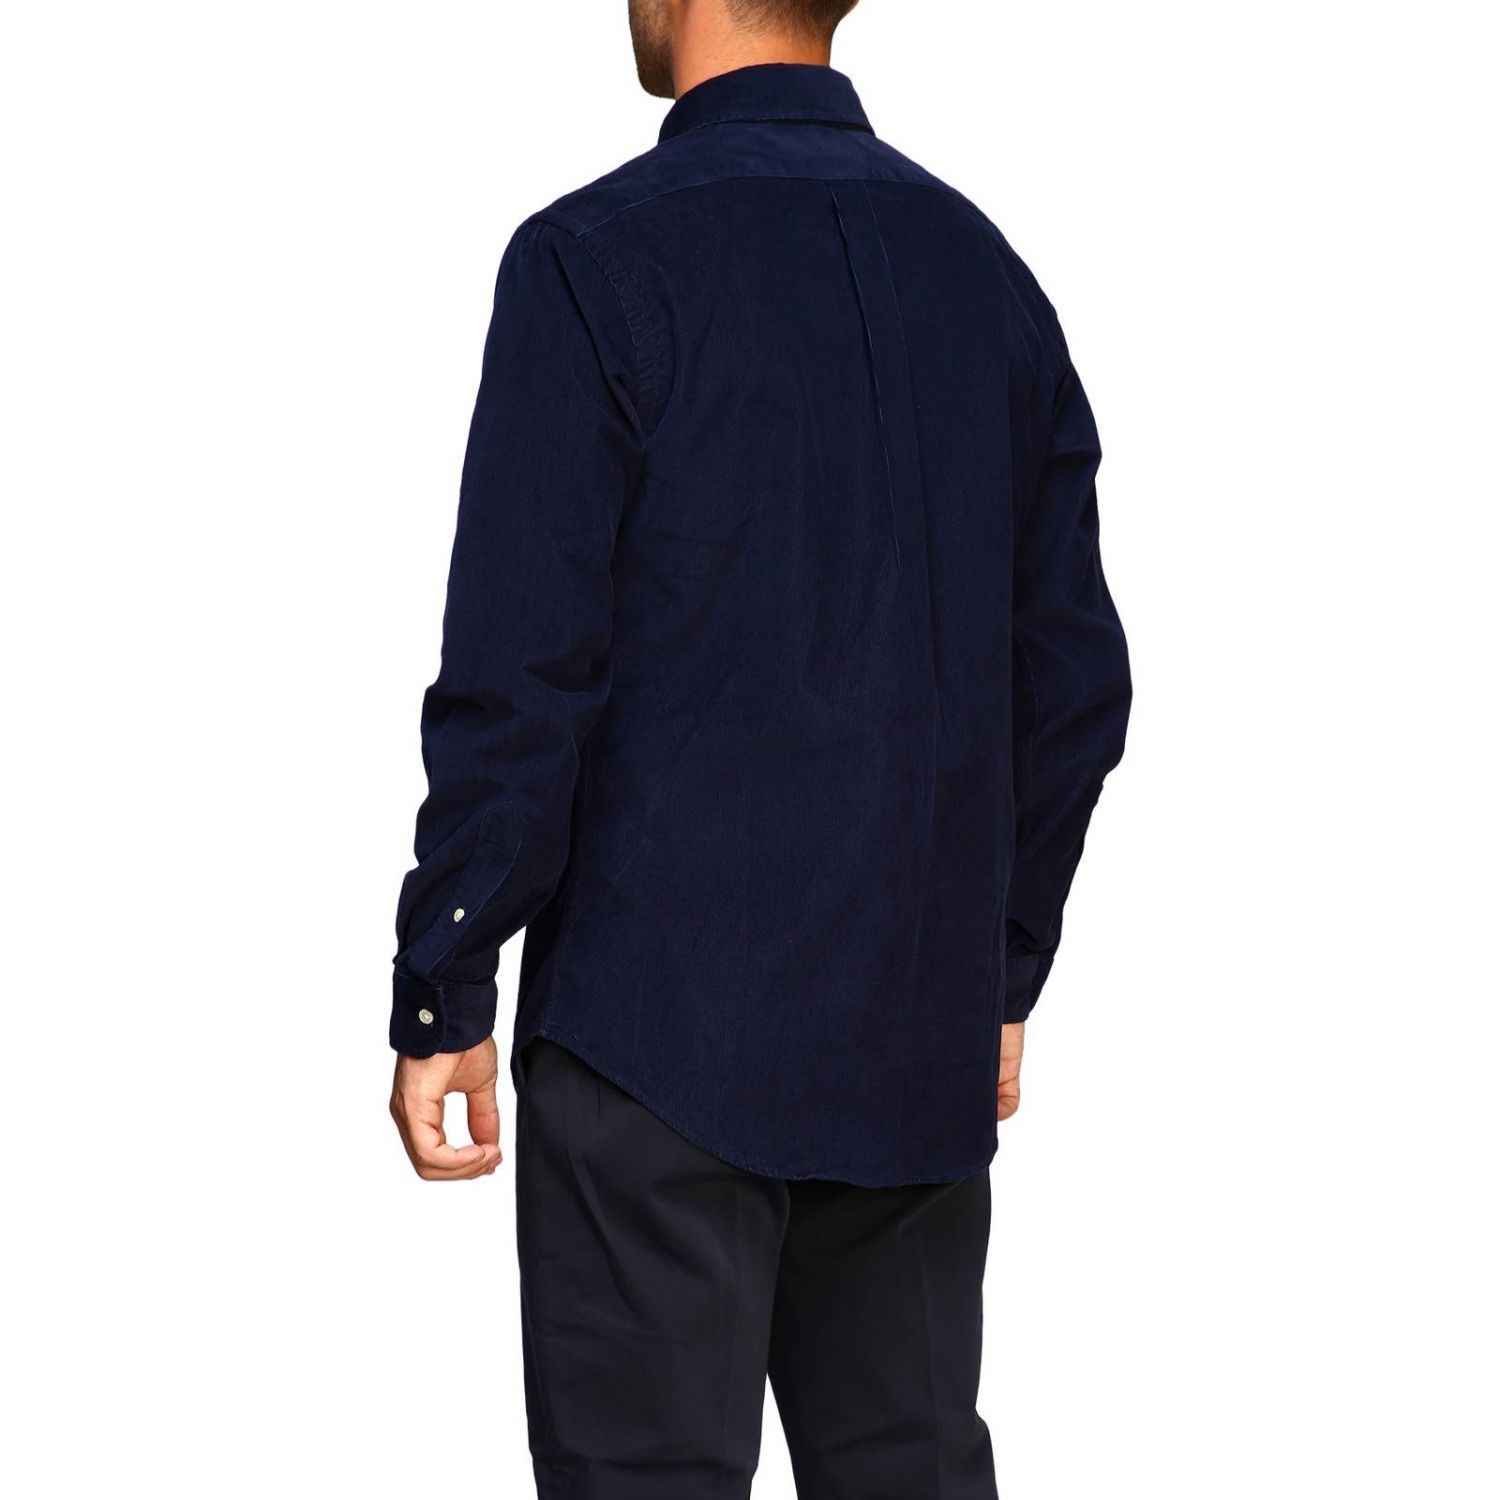 Custom-fit ribbed shirt with button-down collar and Polo Ralph Lauren logo blue 3